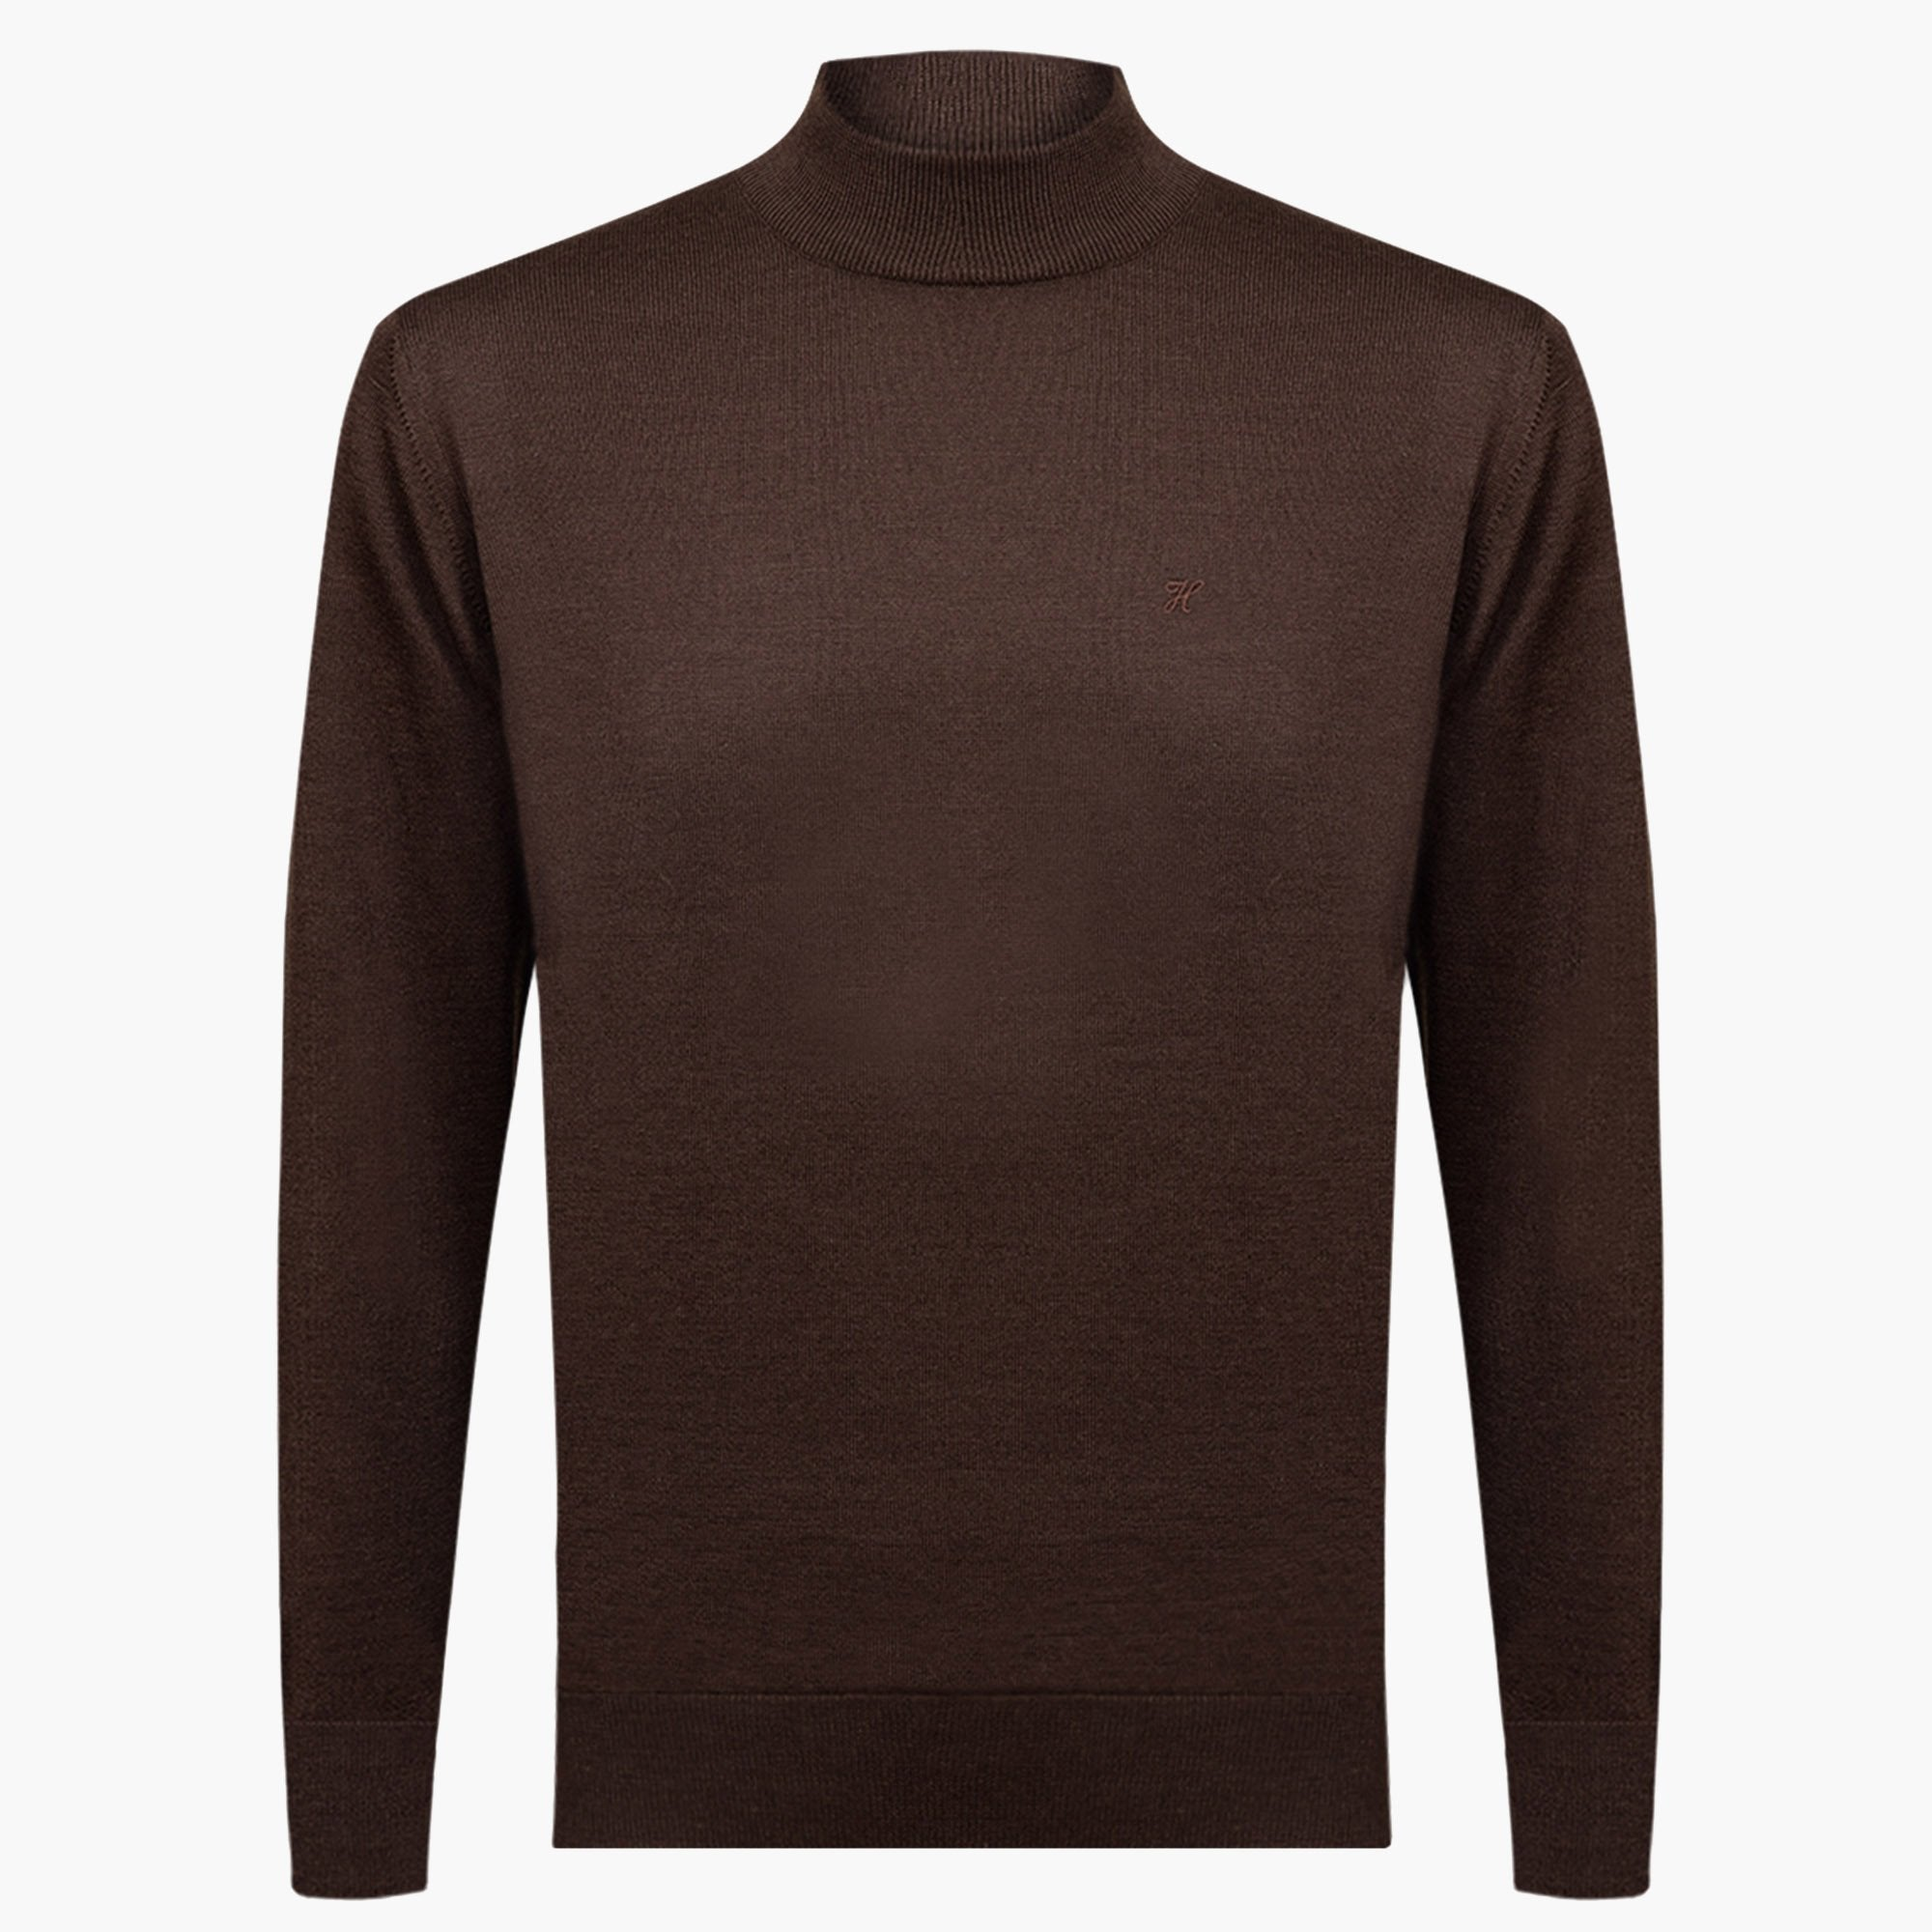 Brown Regular Fit Woolen Light Mock Neck Sweater